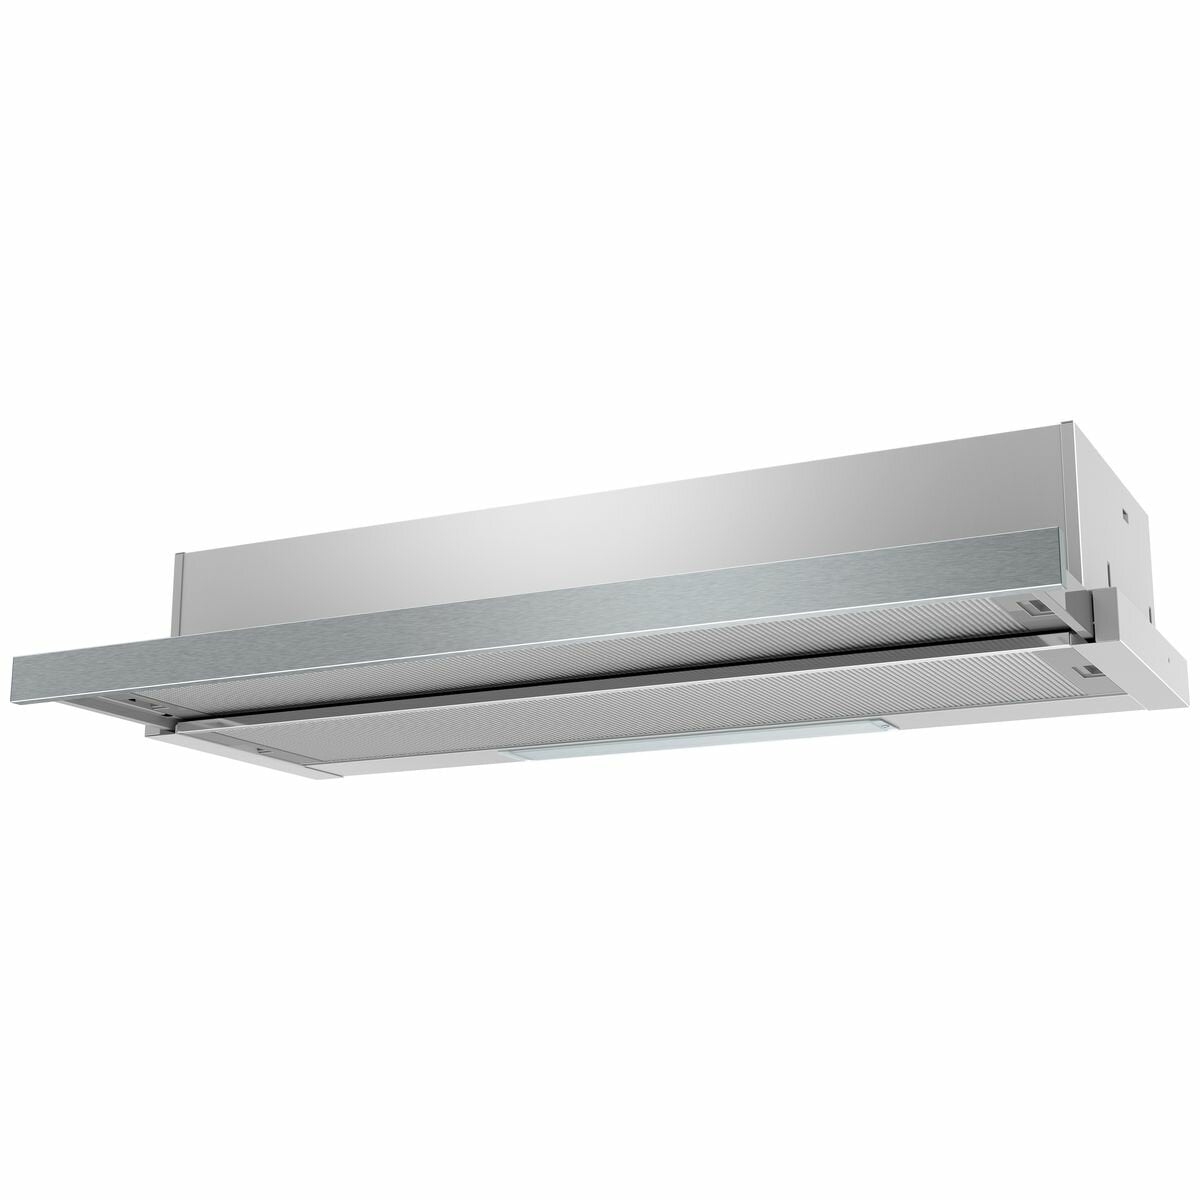 Westinghouse WRR904SB 90cm slide out rangehood